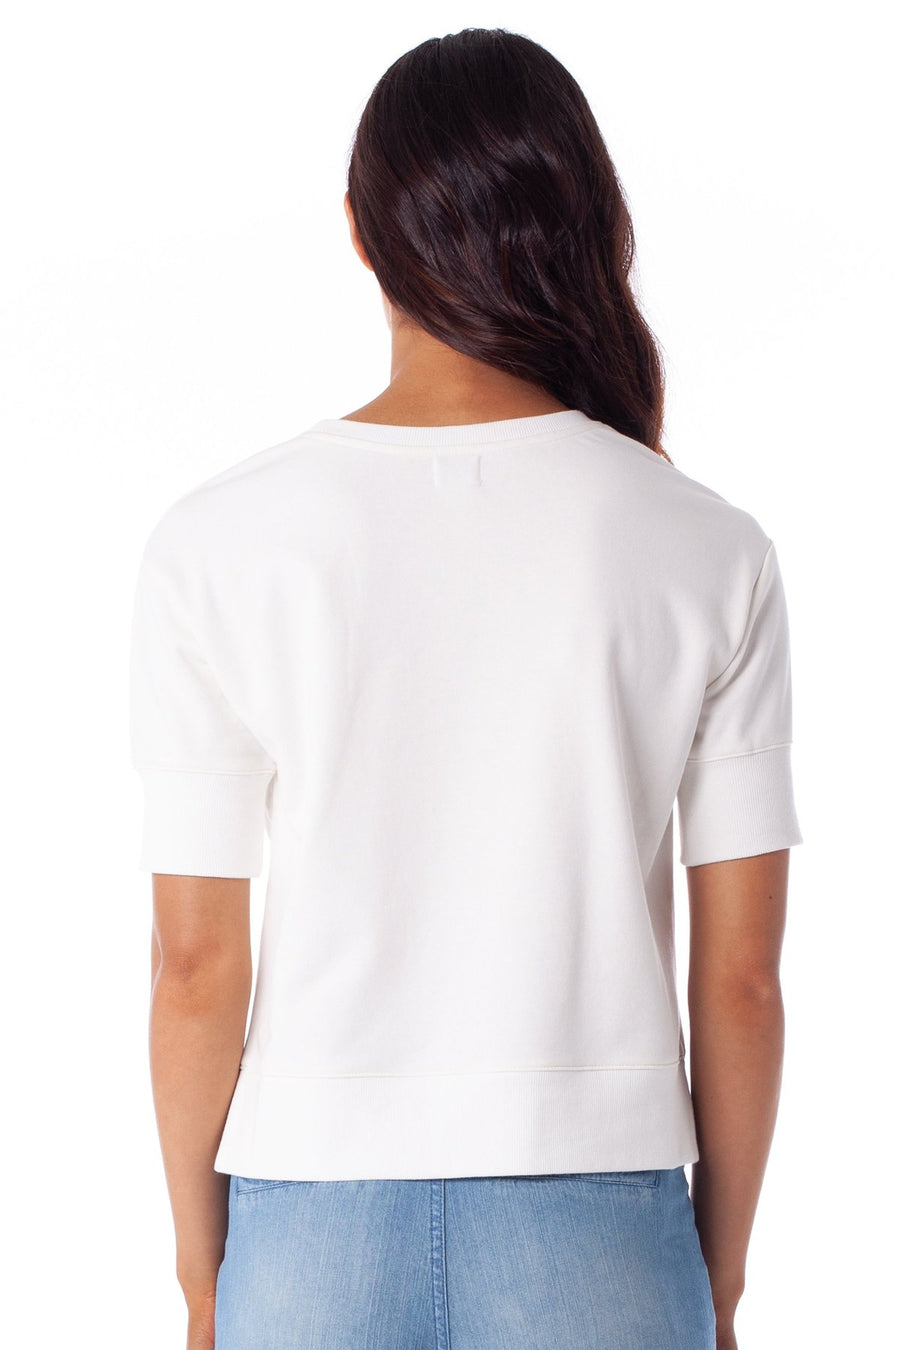 RHYTHM Cleo Pullover Top Women's White